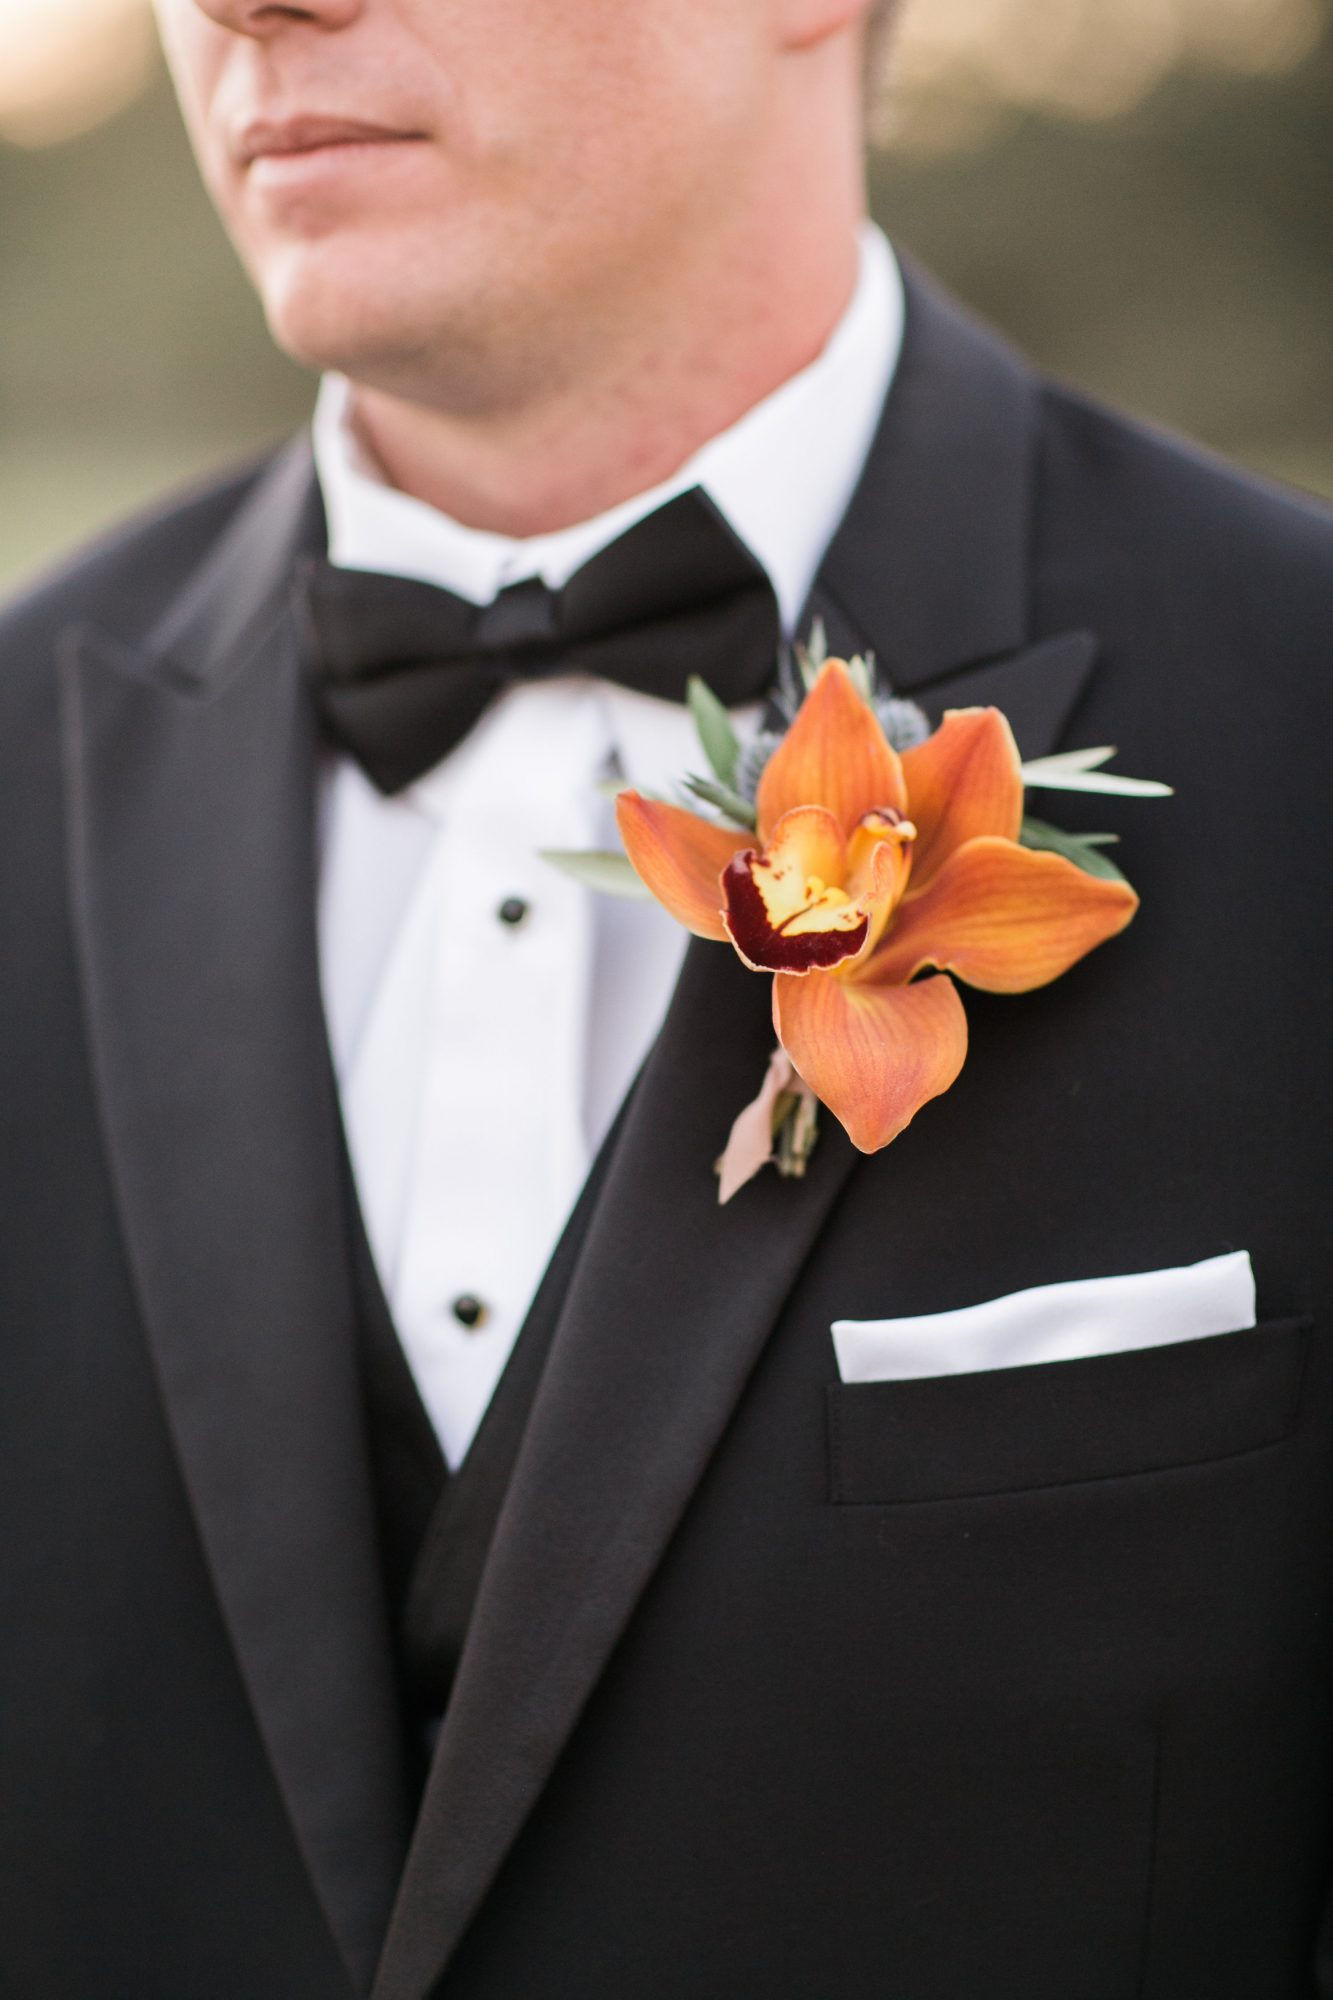 Classic Yet Lively Groom Attire